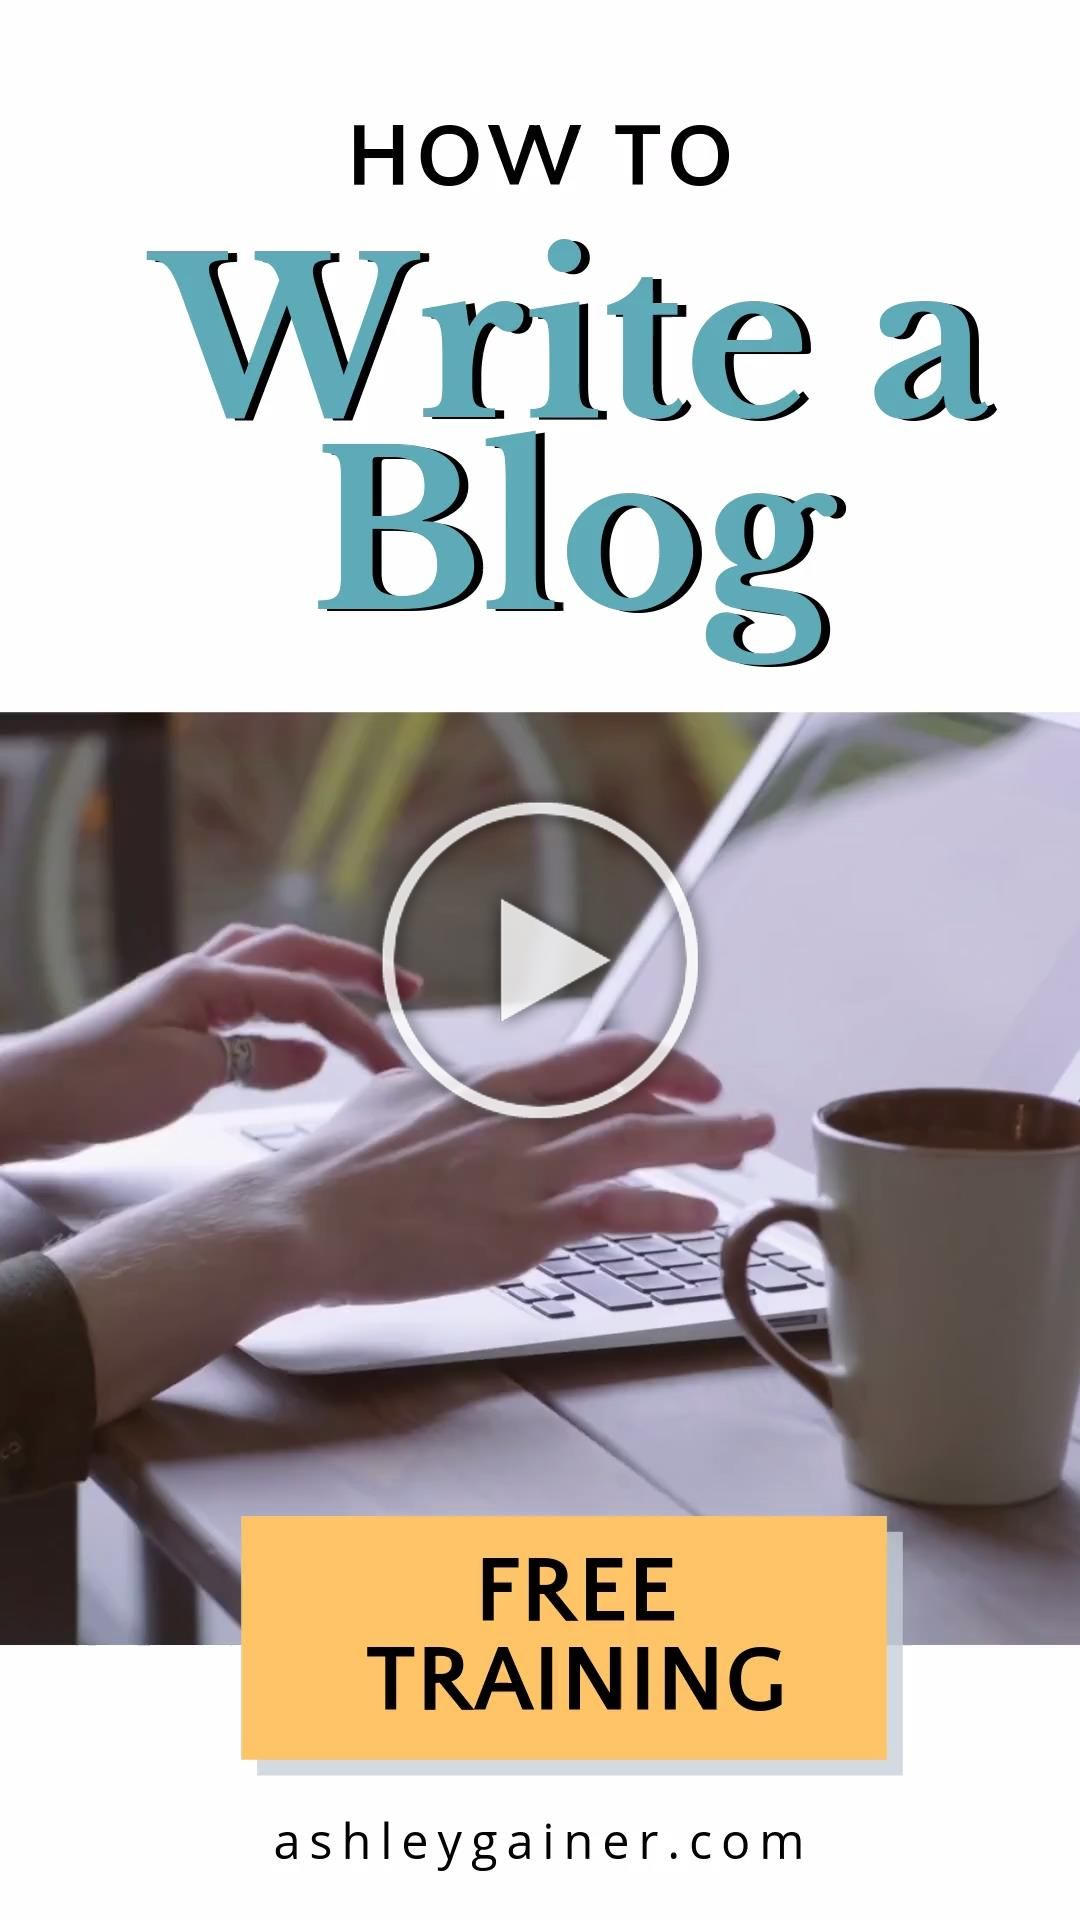 Signup and learn how to write a blog How to create a blog and starting blogging free guide for beginners The best content tips and ideas for bloggers Visit to get the ste...